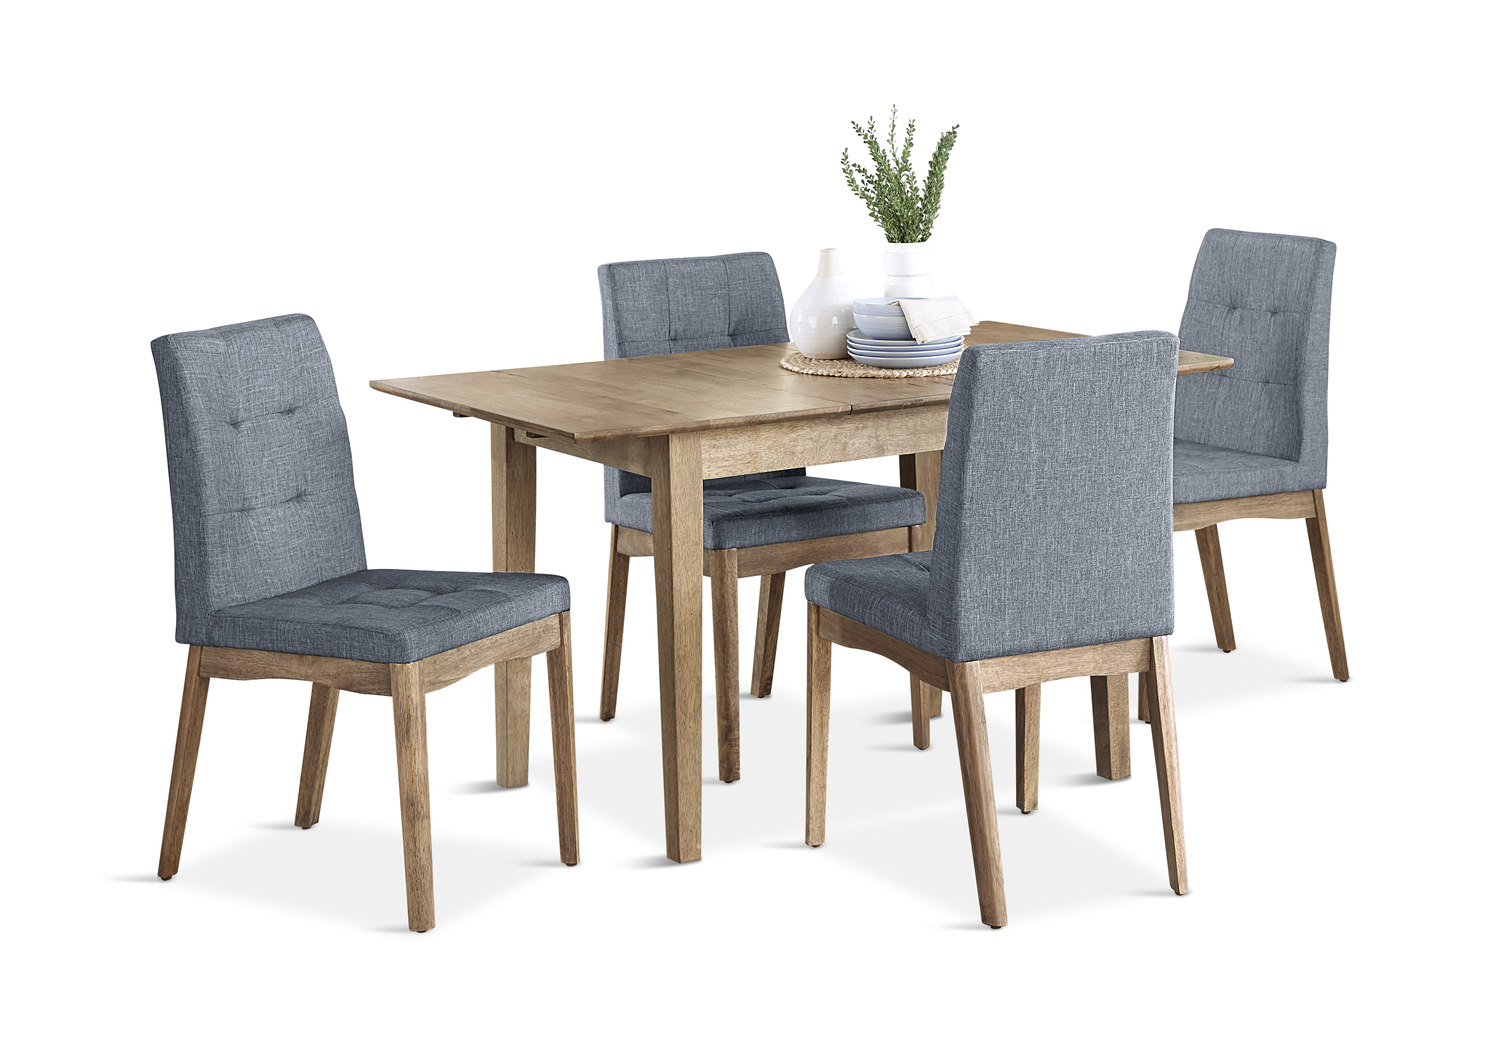 Madrid Dining Table With 4 Chairs